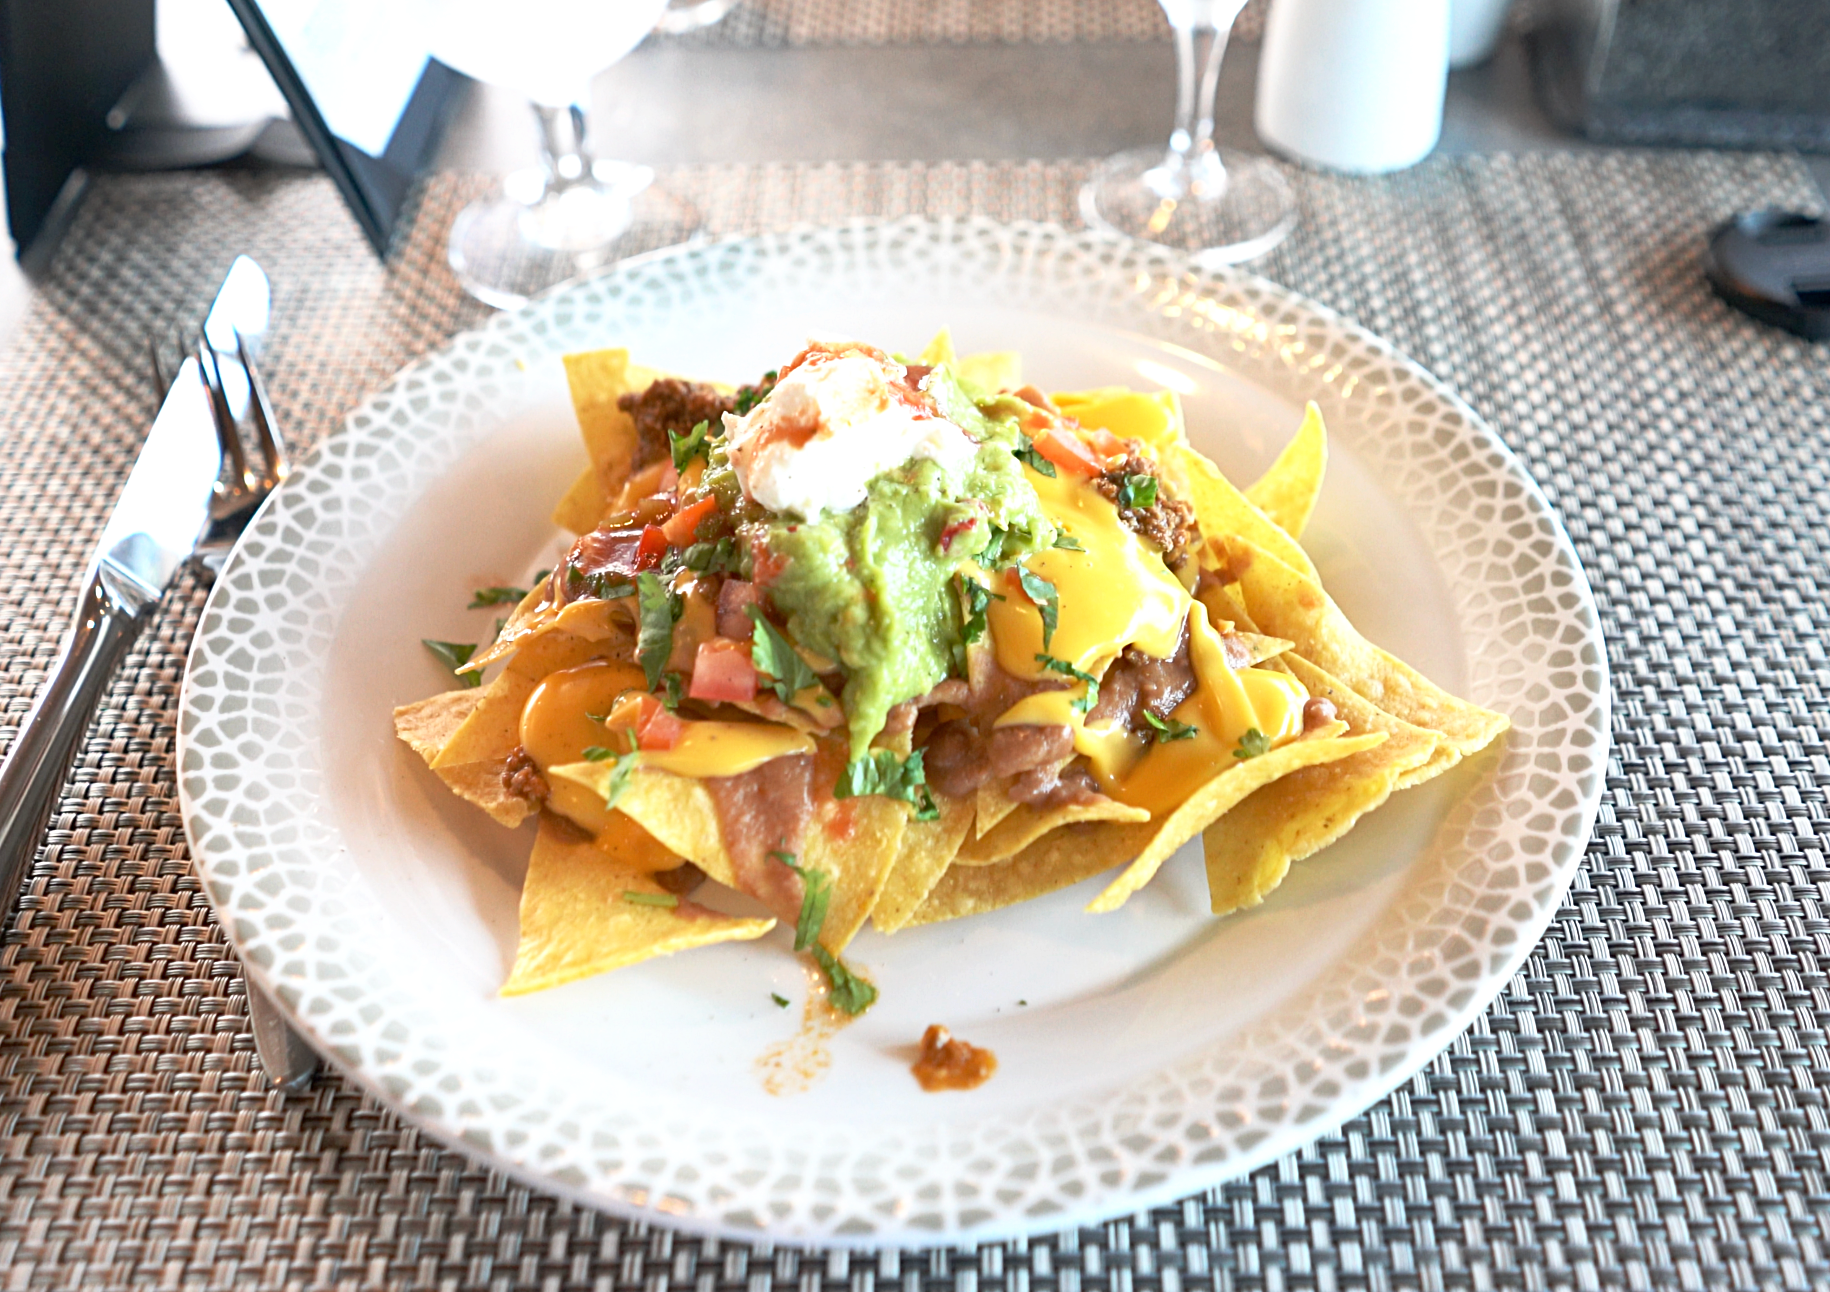 The irrisistable plate of Nachos